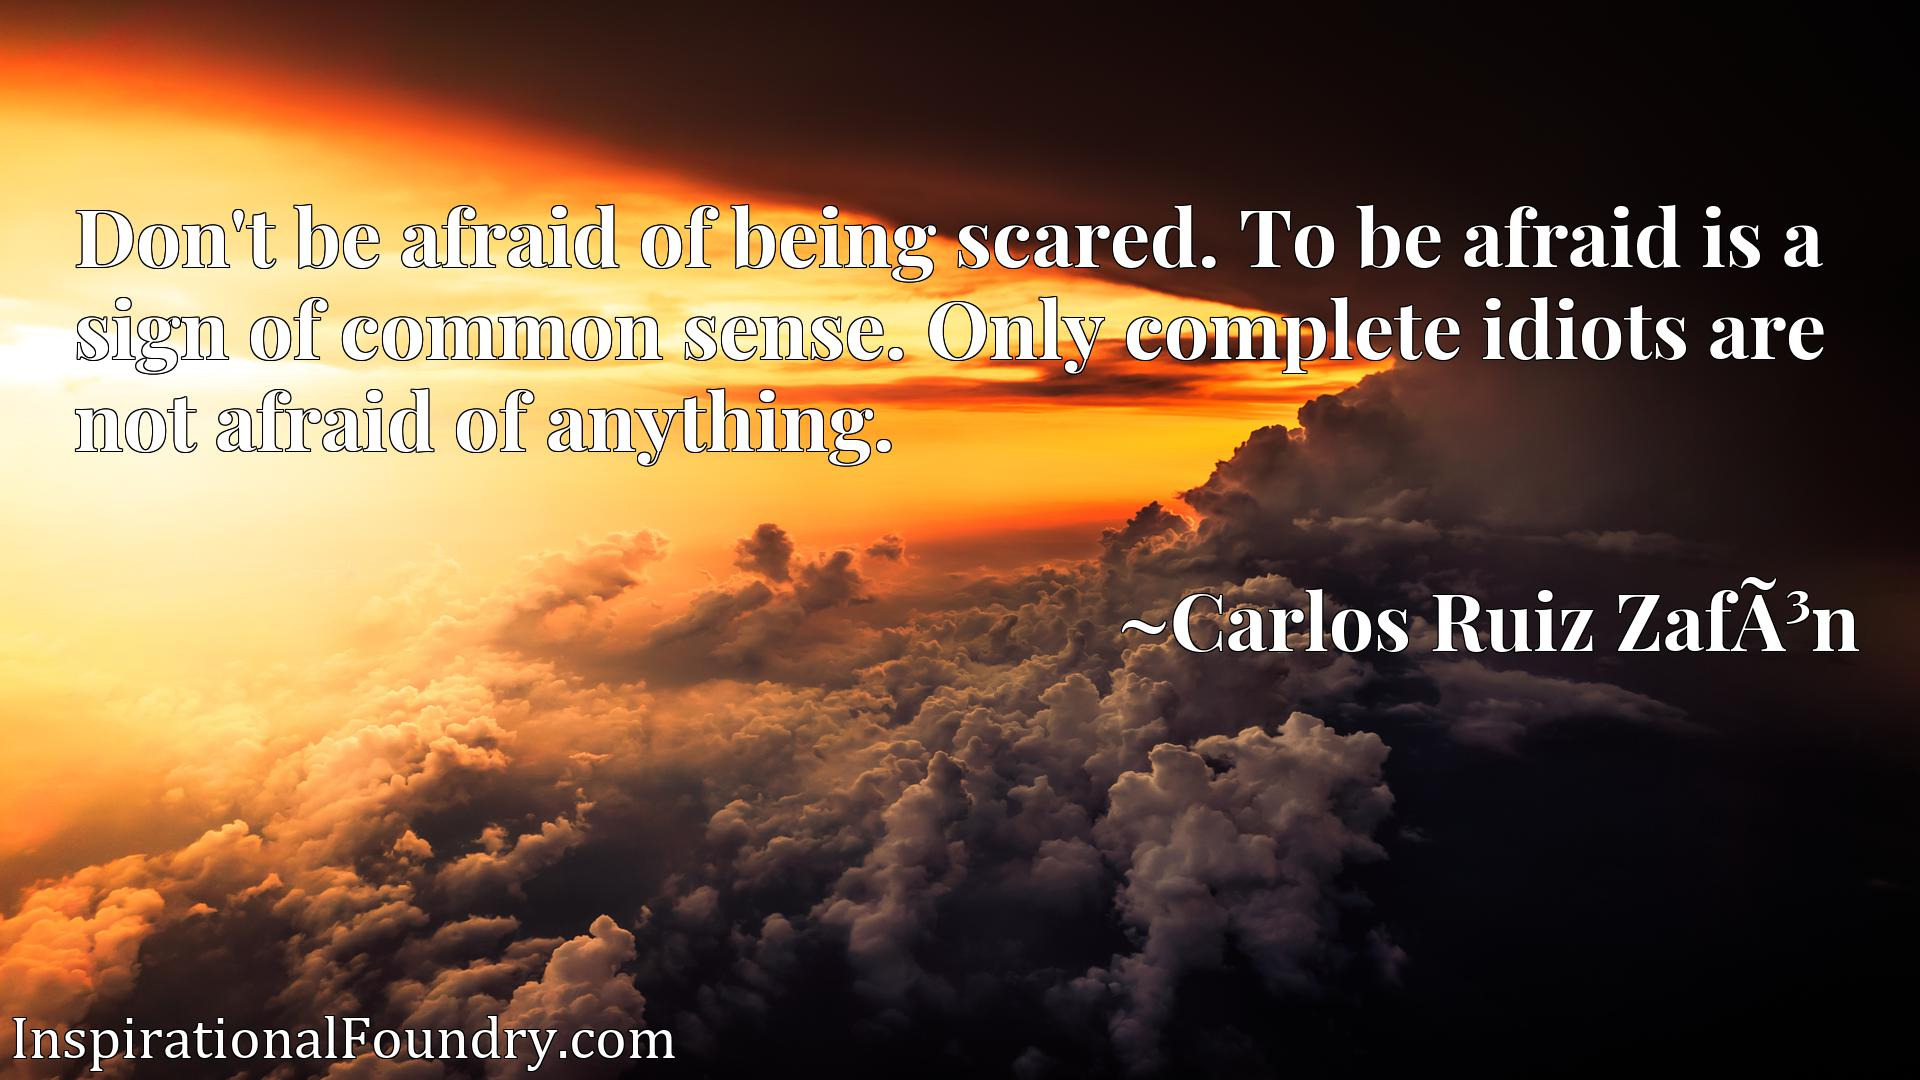 Don't be afraid of being scared. To be afraid is a sign of common sense. Only complete idiots are not afraid of anything.